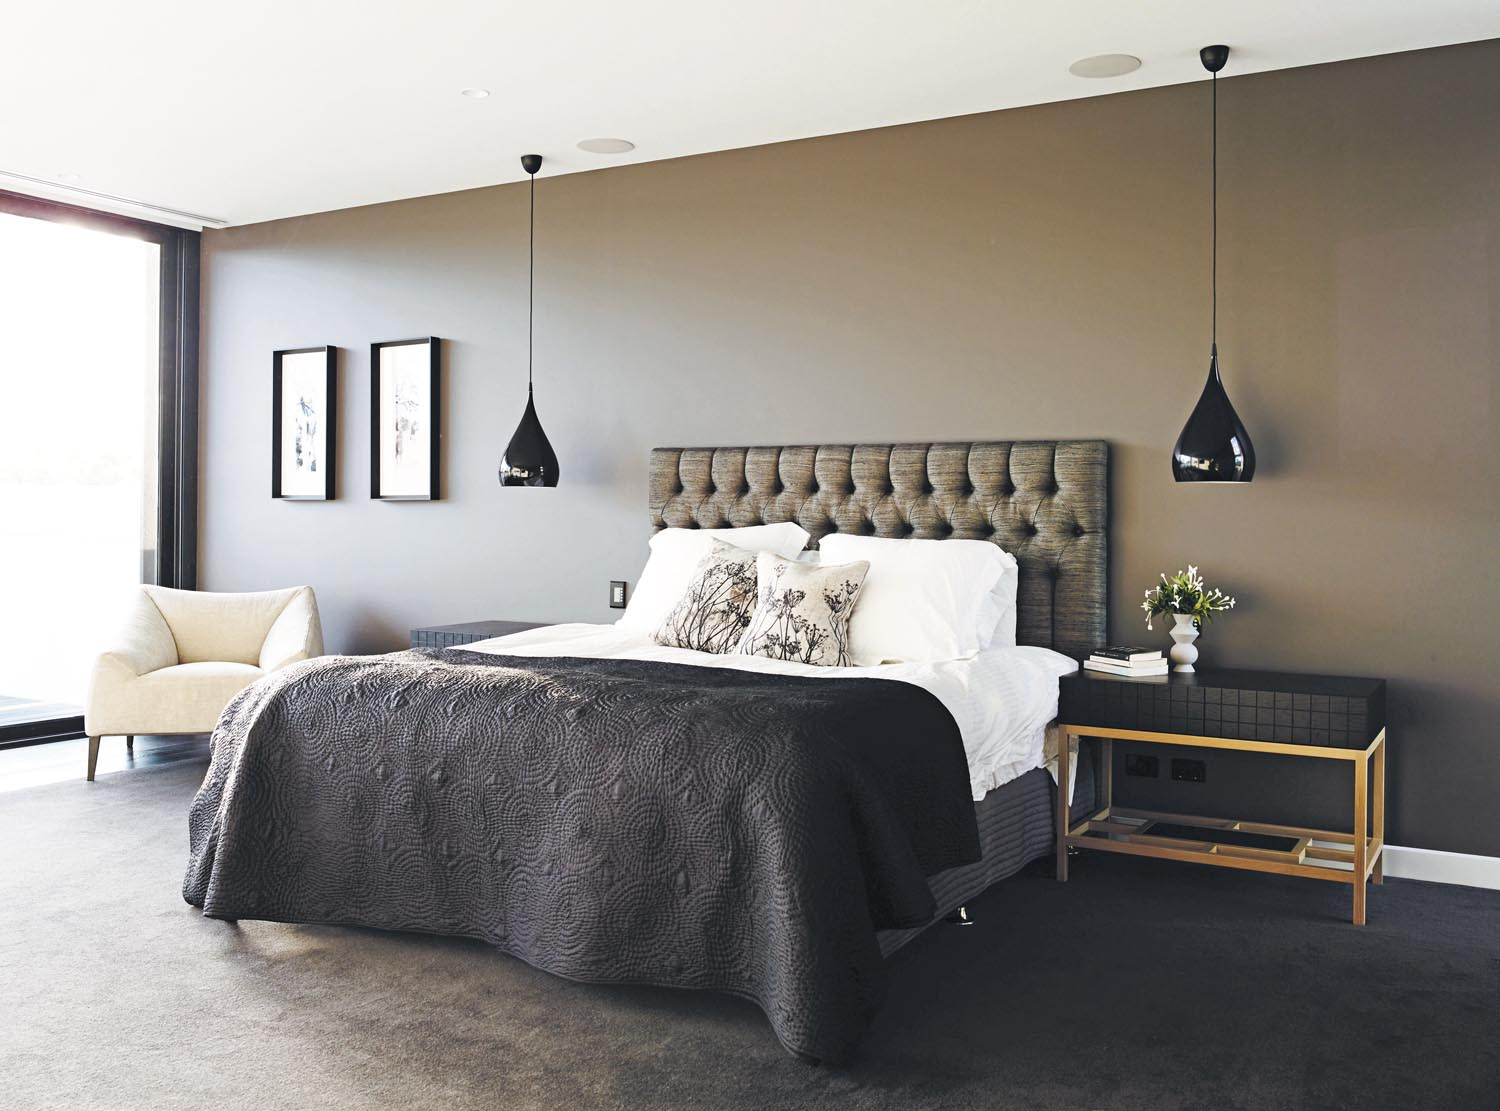 Dark tones create a warm and cosy atmosphere in his plush bedroom